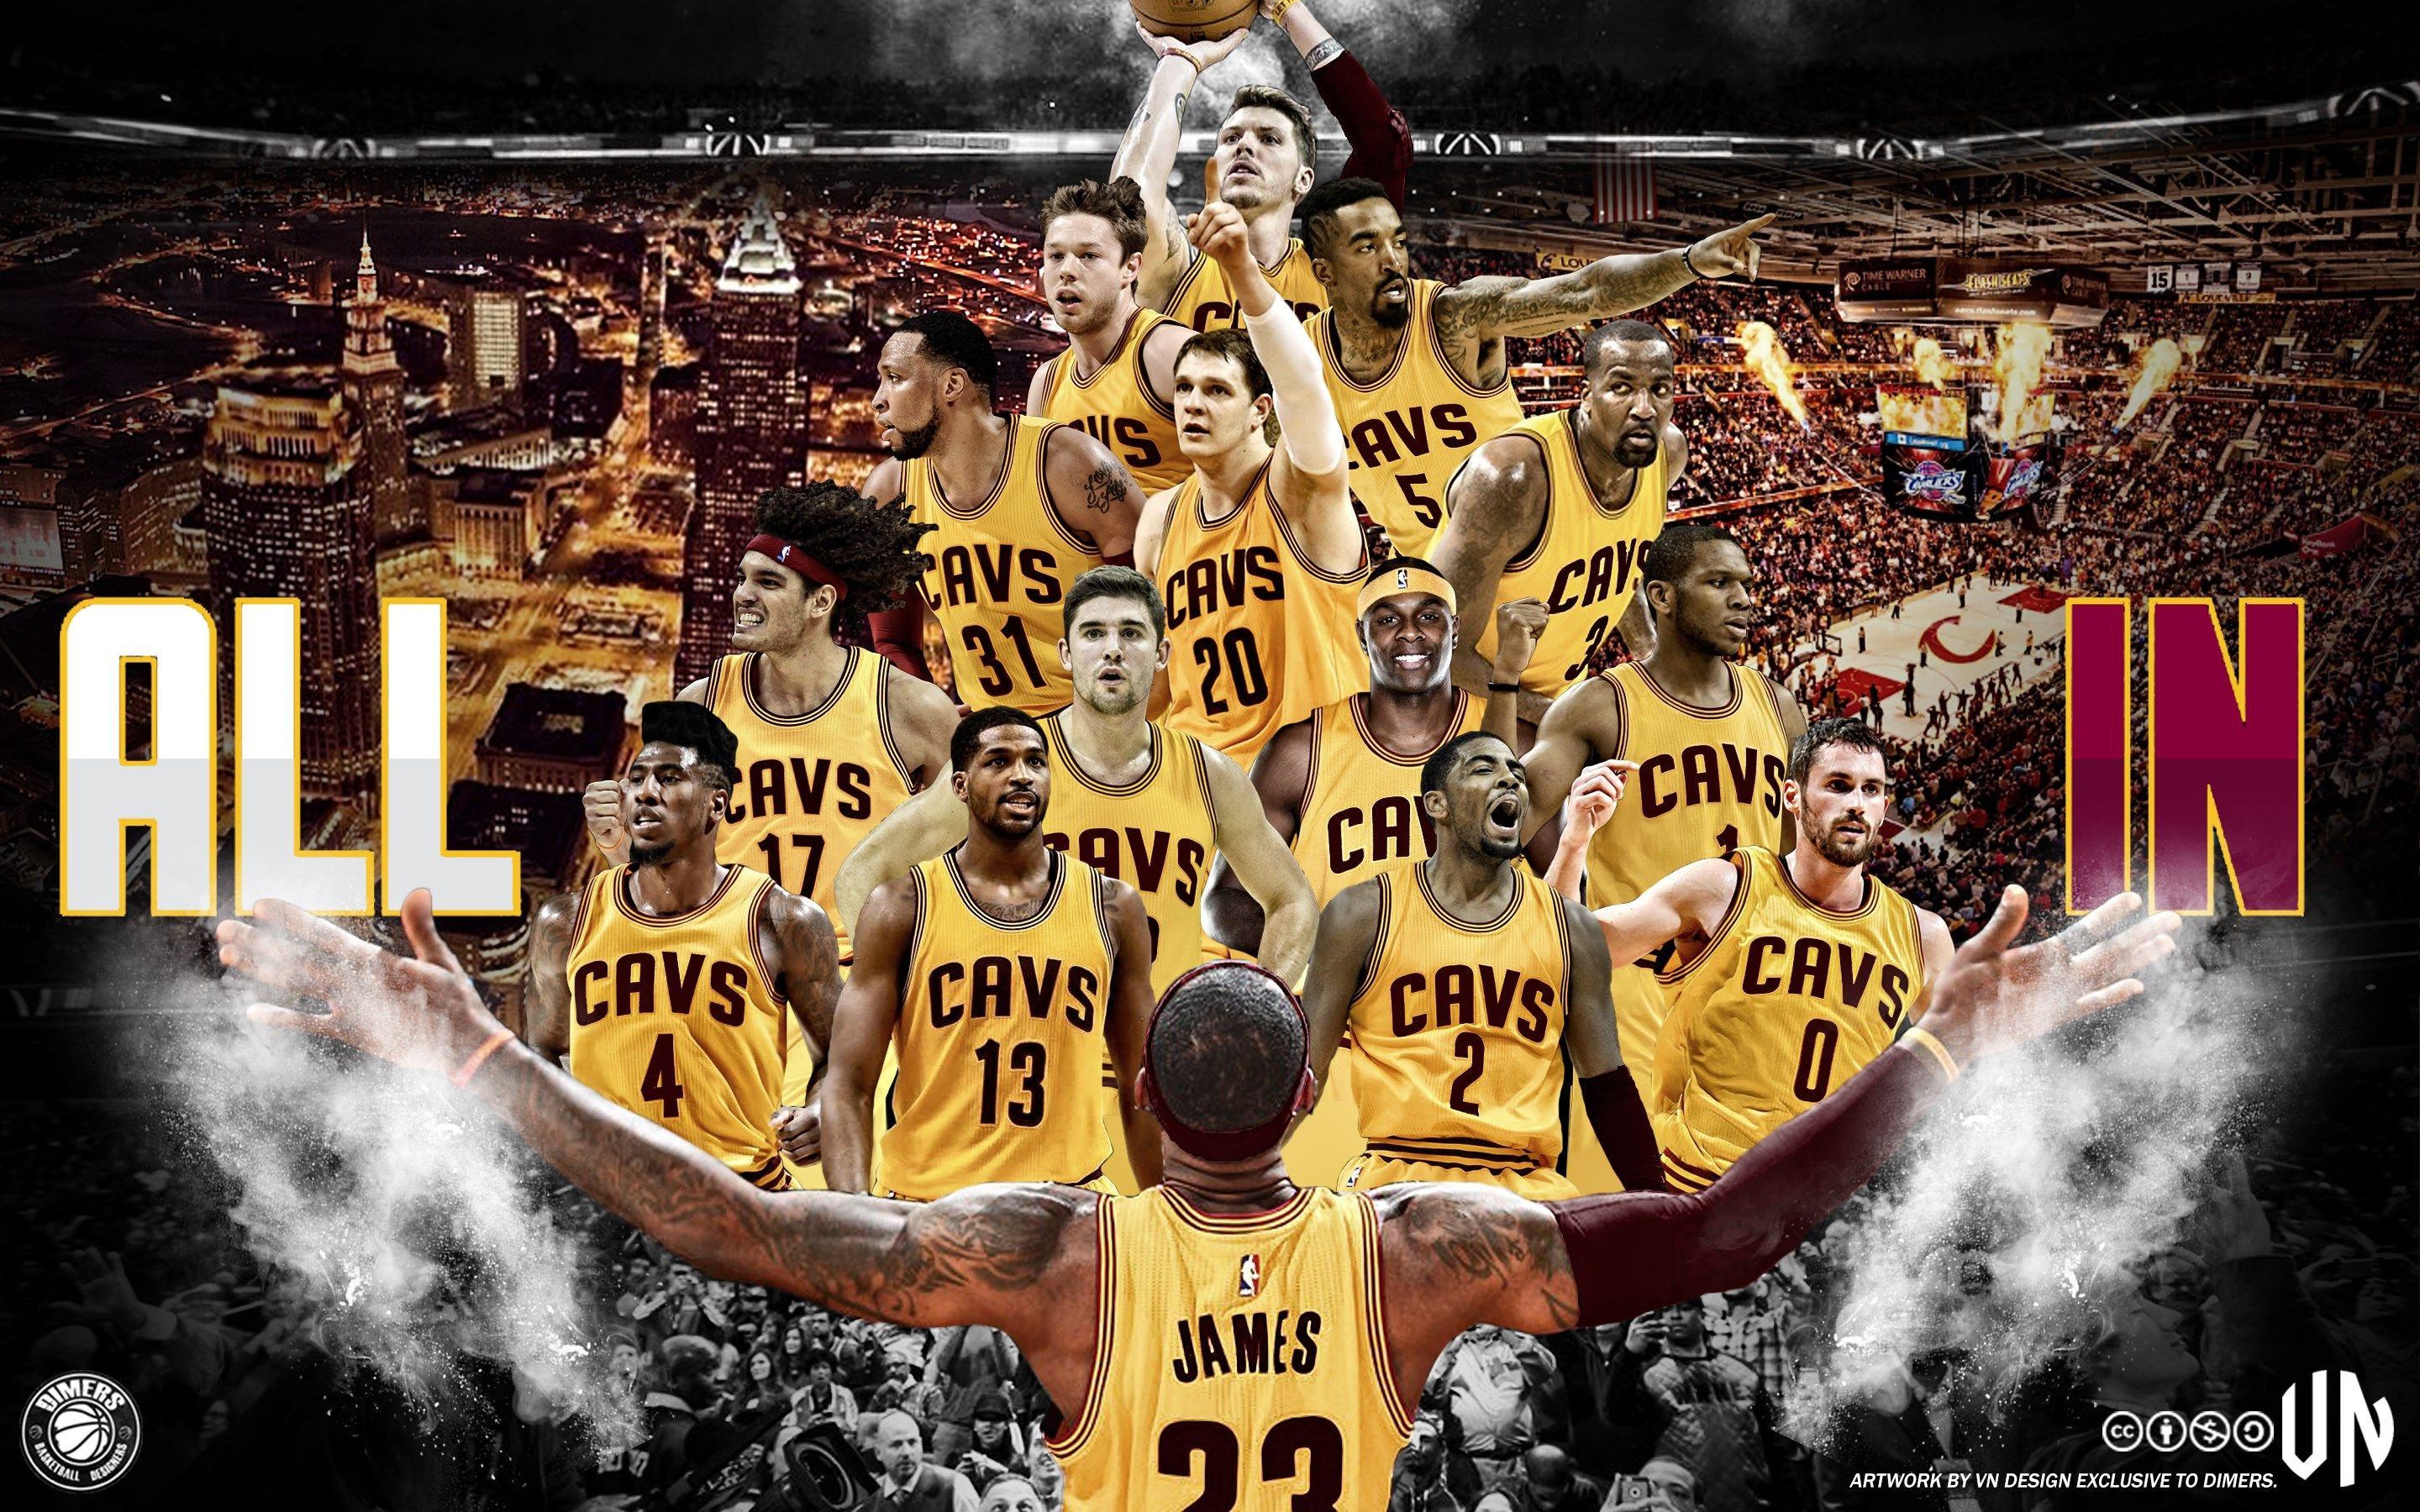 Cleveland Wallpaper 2017 >> Cleveland Cavaliers 2017 Wallpapers Wallpaper Cave